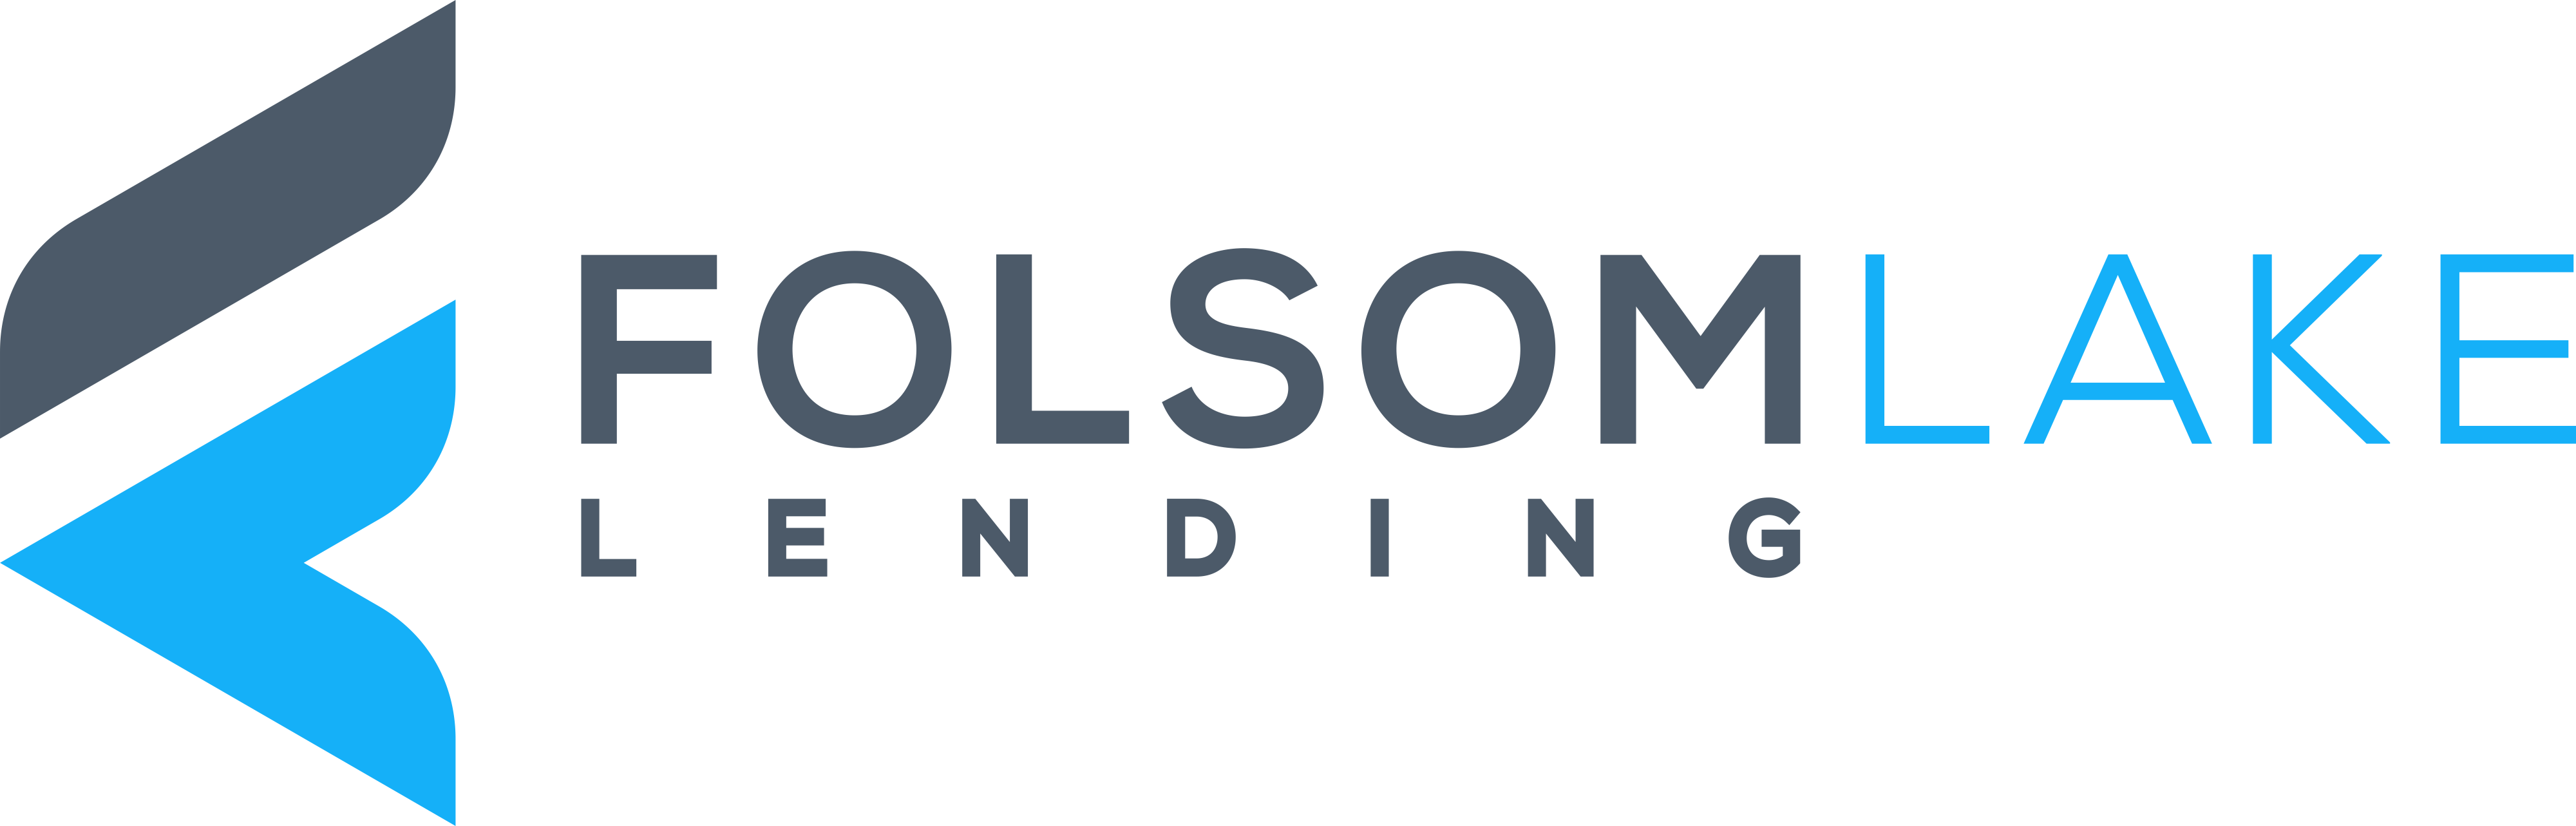 Folsom Lake Lending Inc.